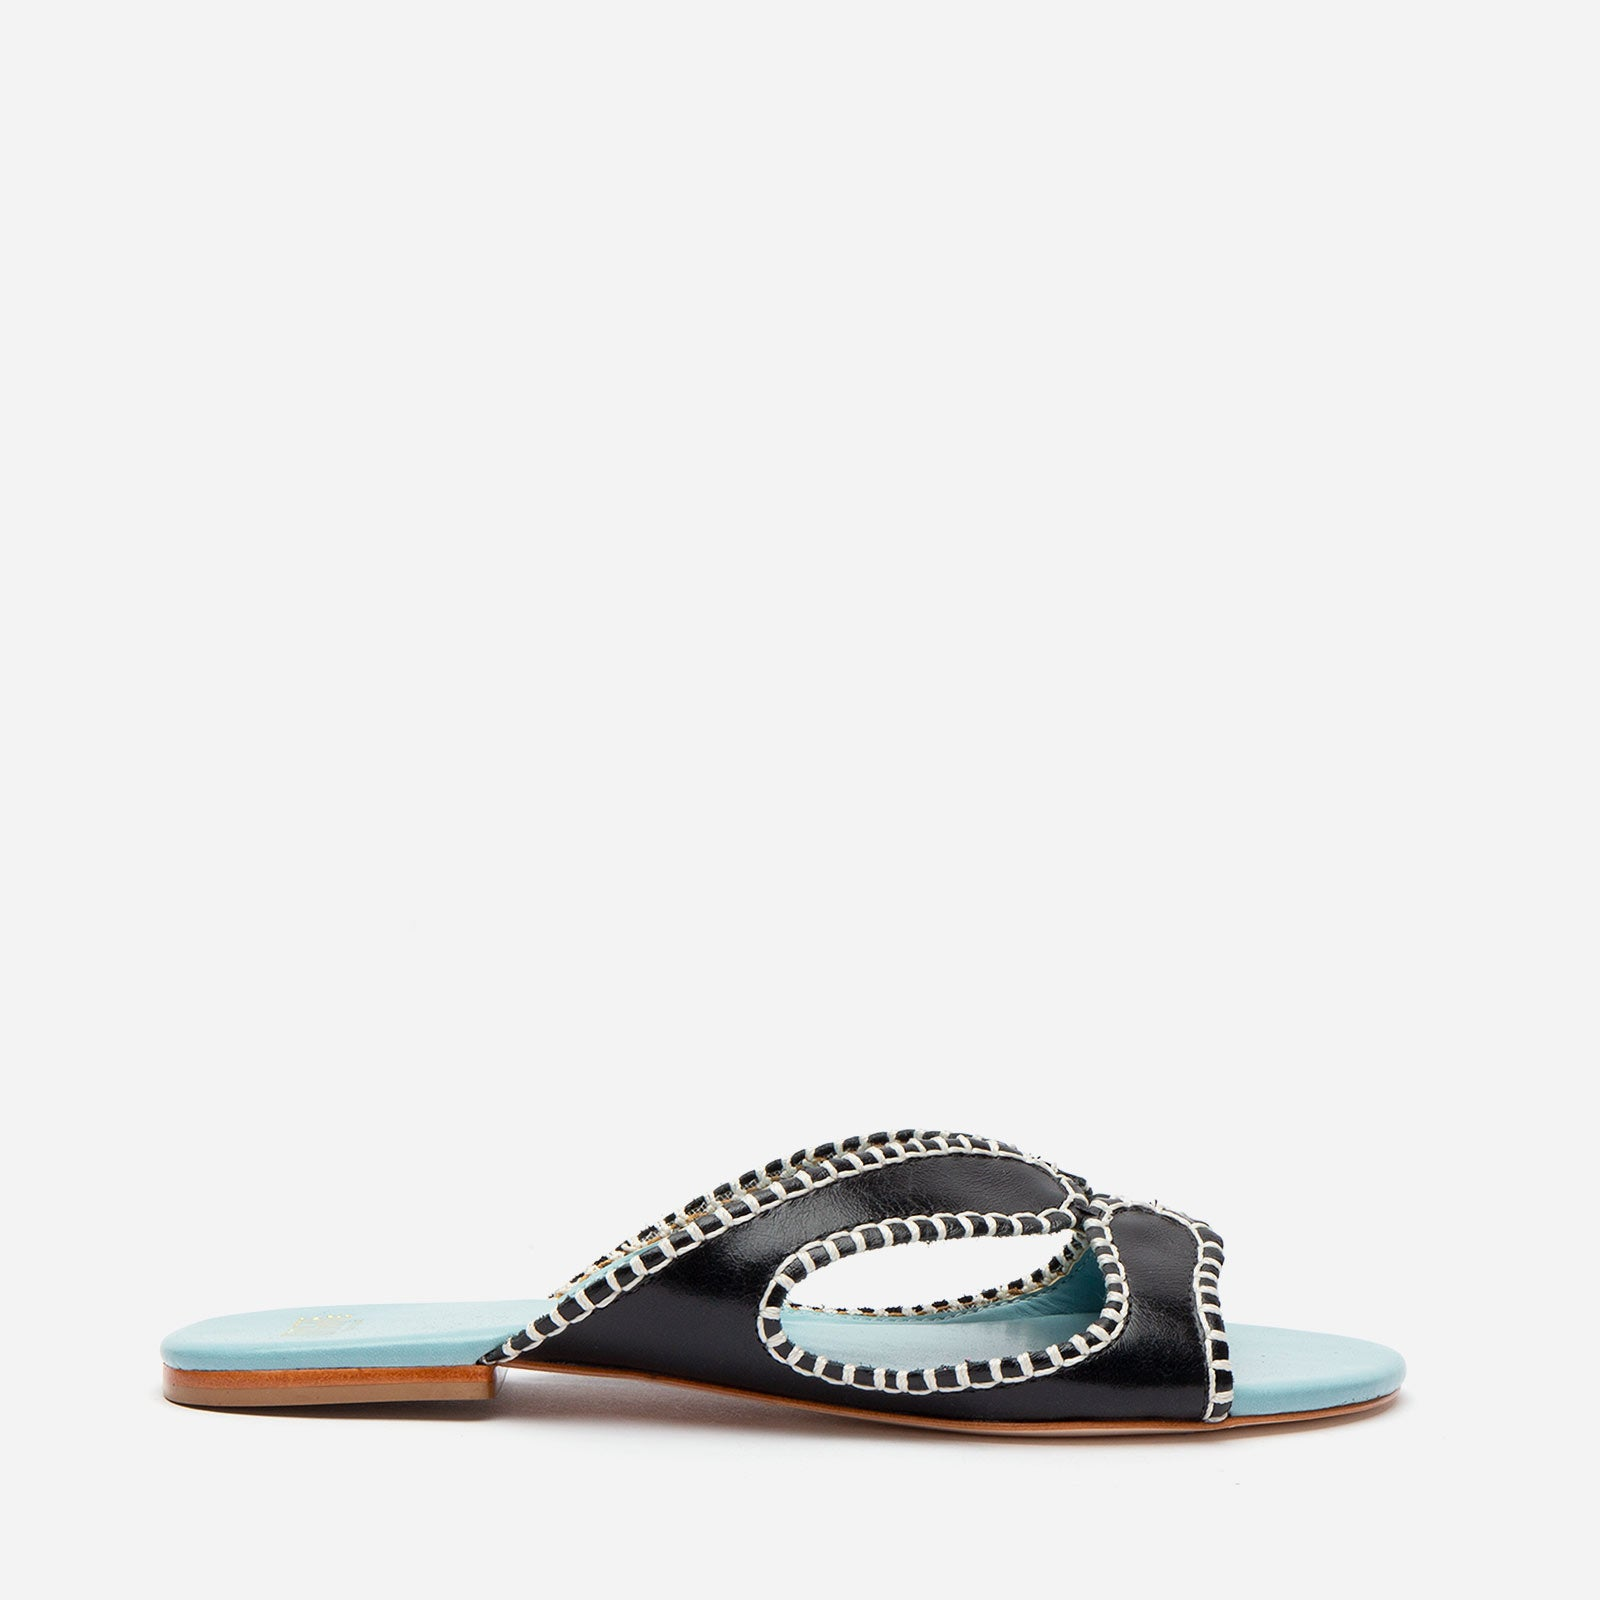 Meredith Blanket Stitch Sandal Black